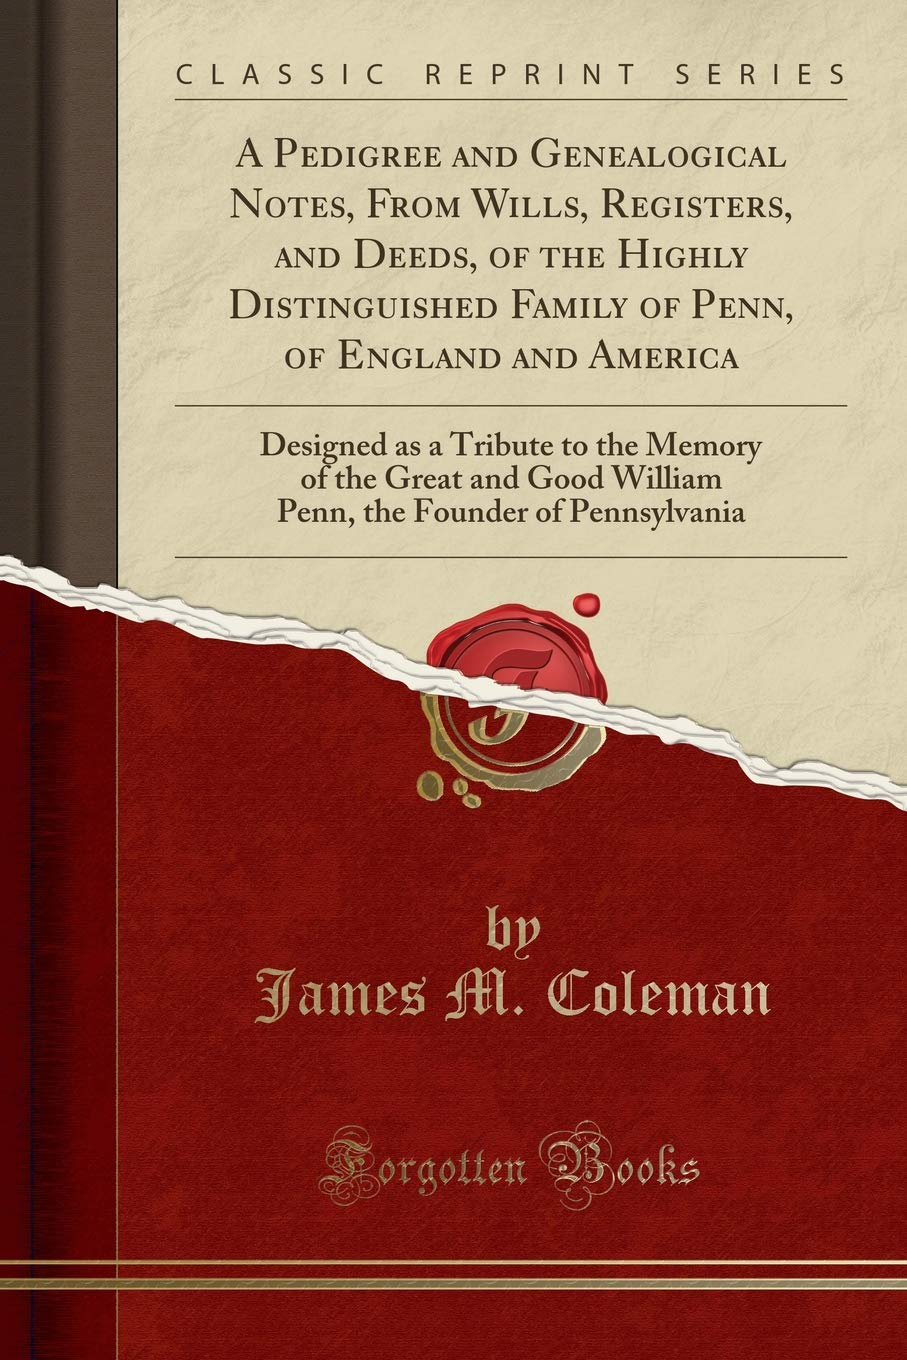 Download A Pedigree and Genealogical Notes, From Wills, Registers, and Deeds, of the Highly Distinguished Family of Penn, of England and America: Designed as a ... the Founder of Pennsylvania (Classic Reprint) ebook